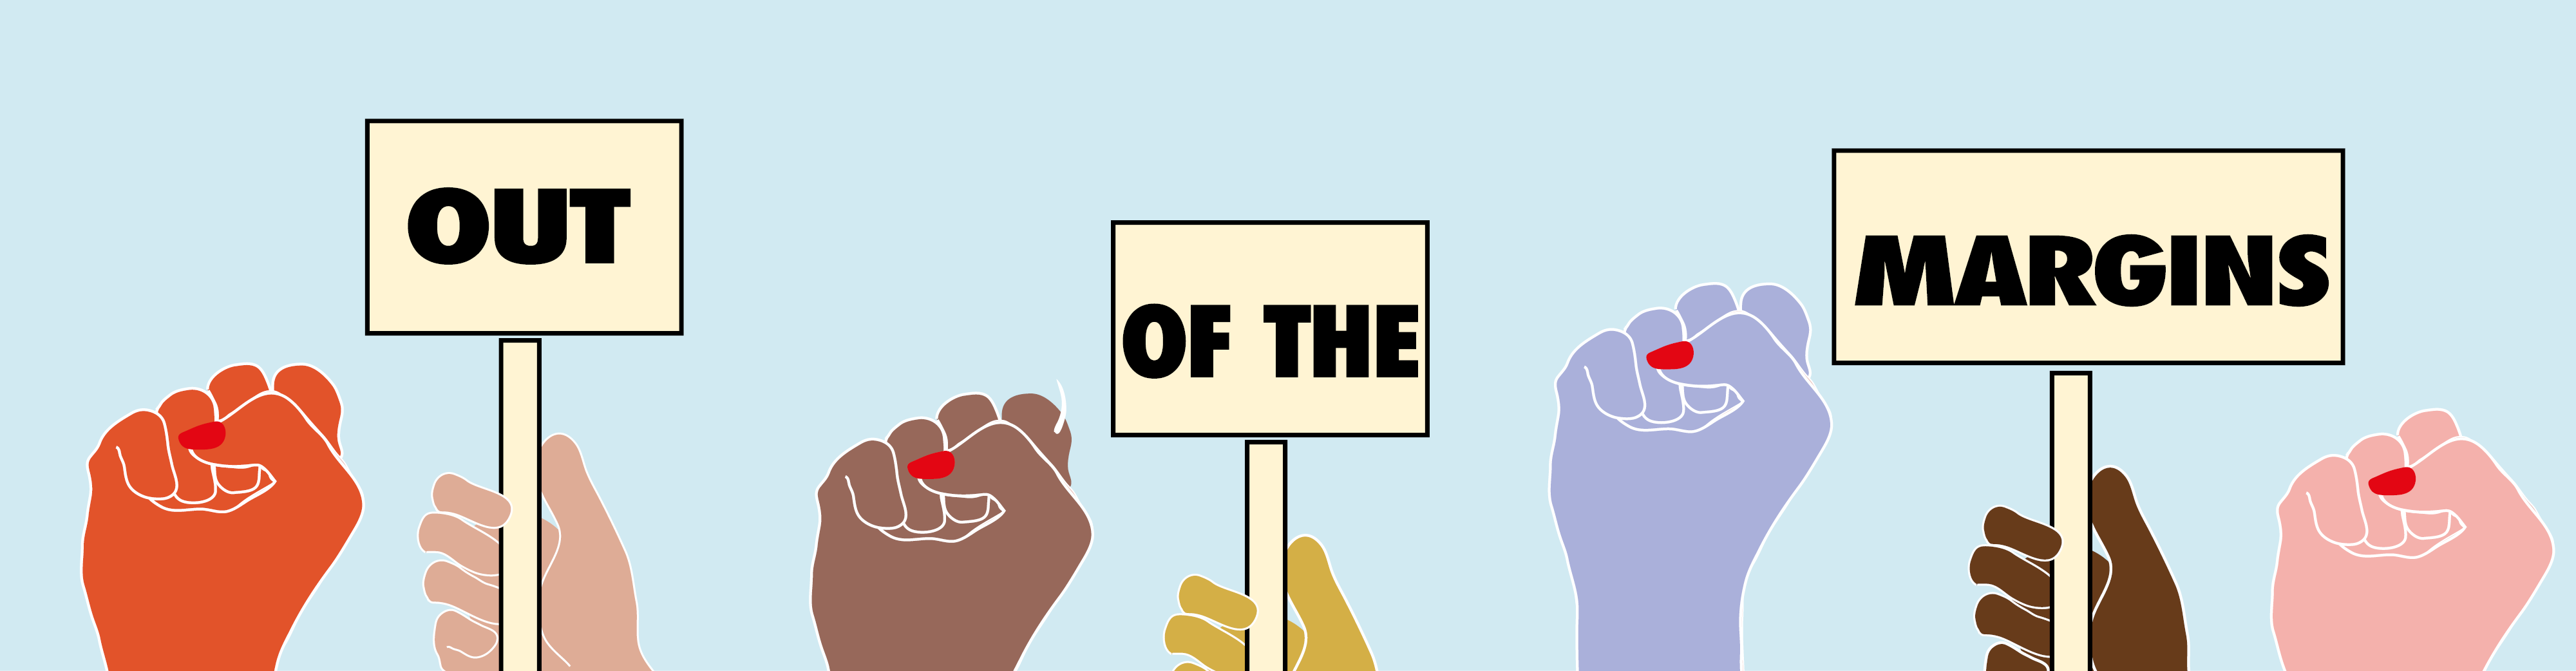 Out of the margins banner